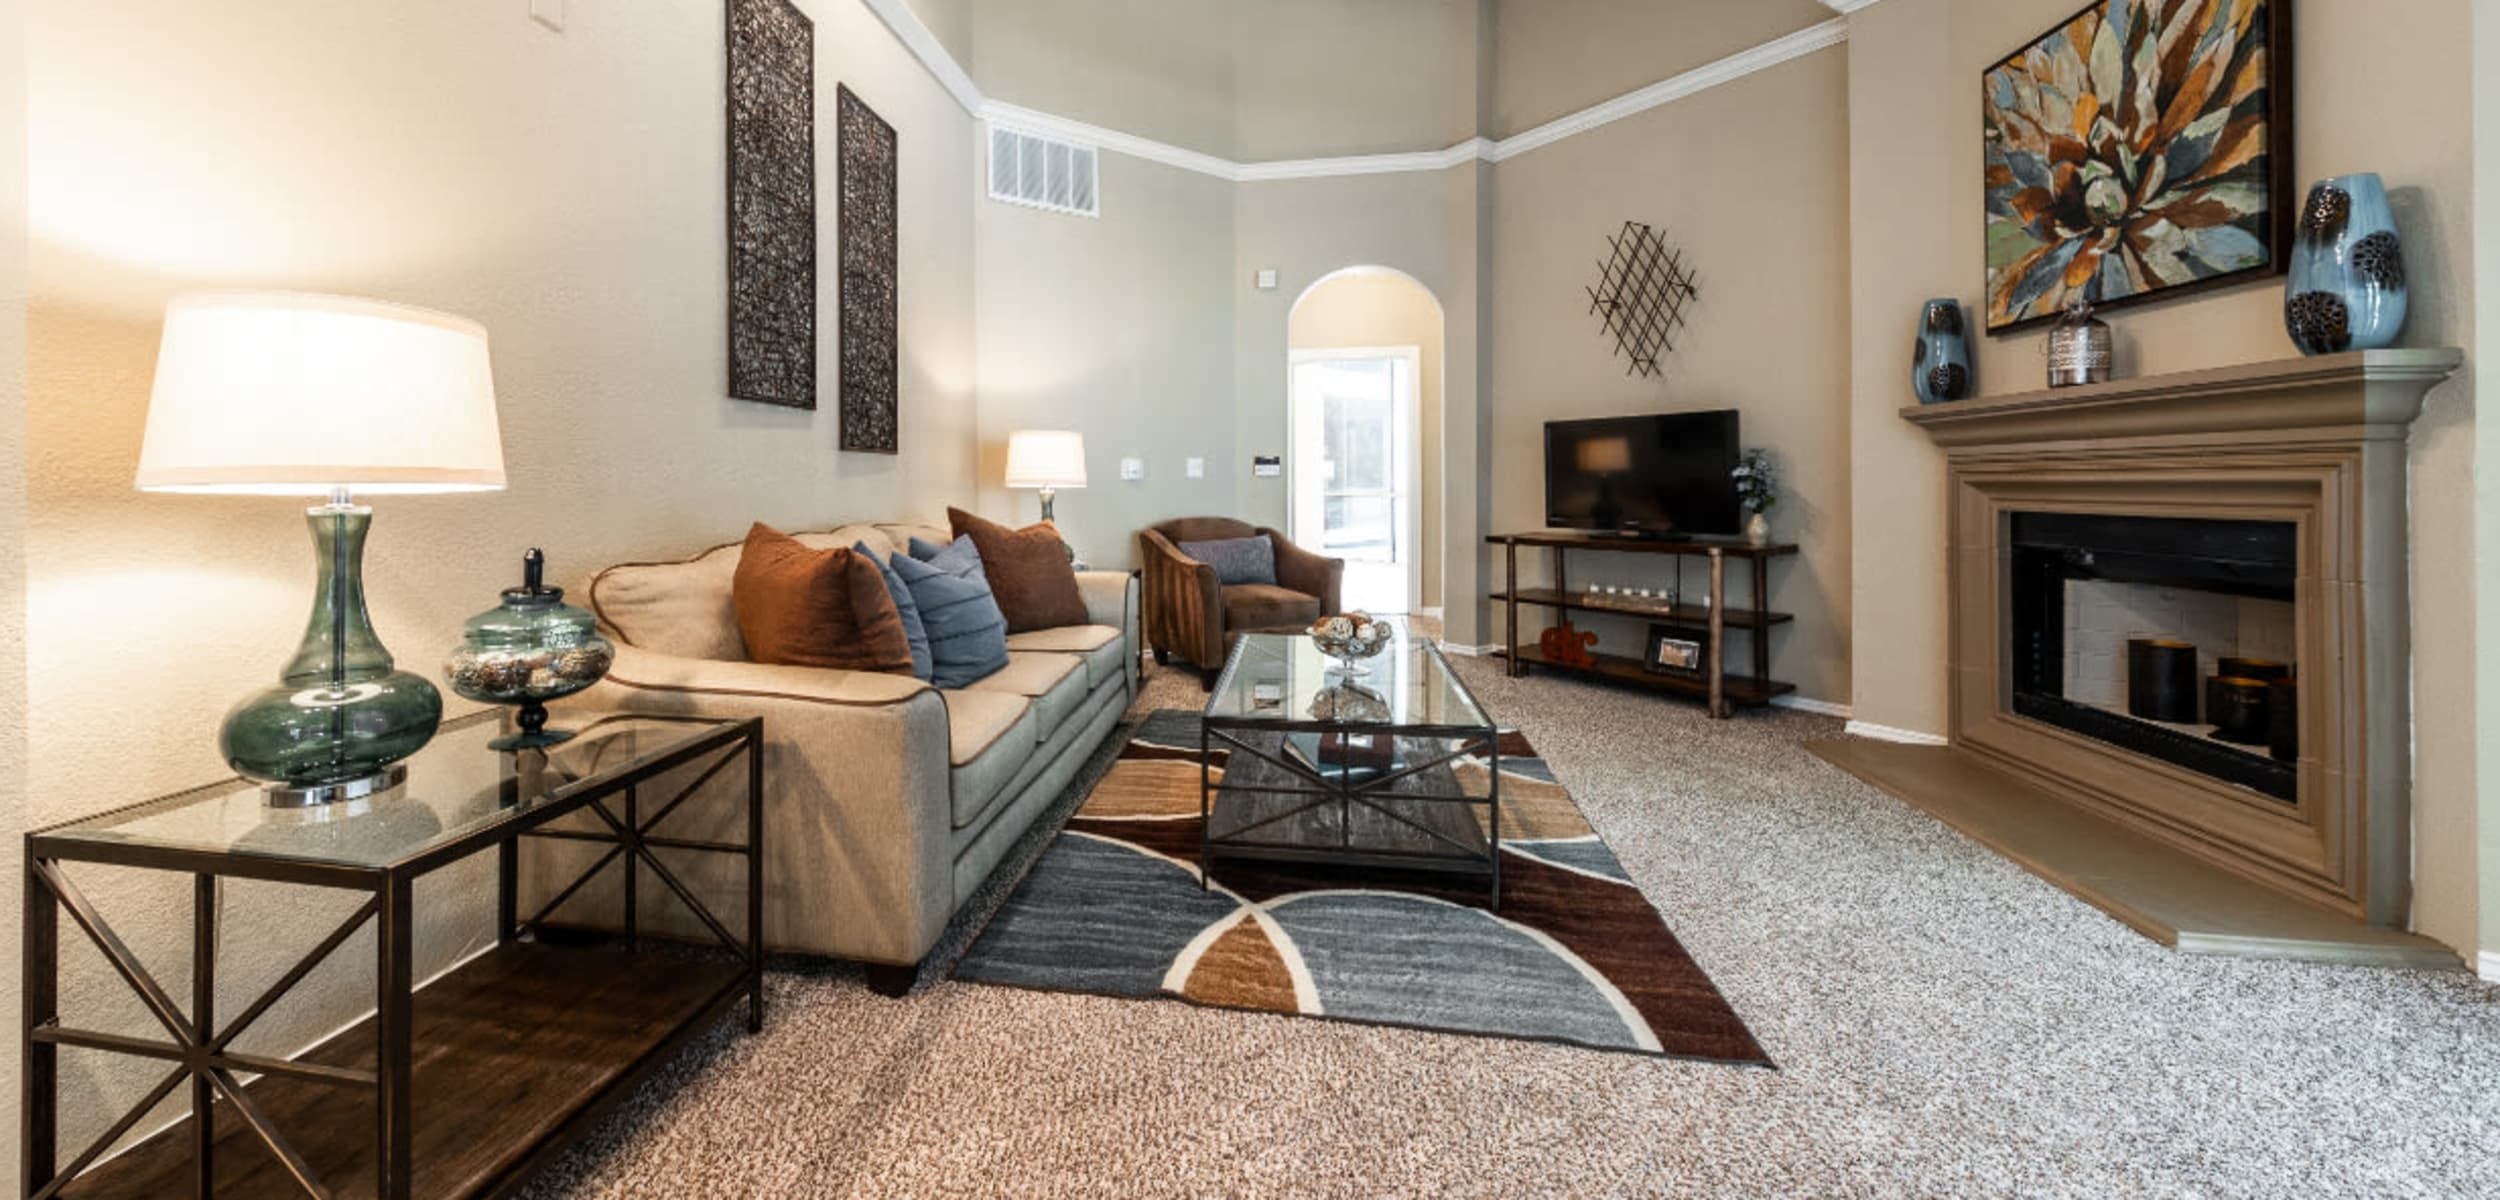 Spacious and carpeted living room with vaulted ceilings and fireplace at Marquis at Waterview in Richardson, Texas